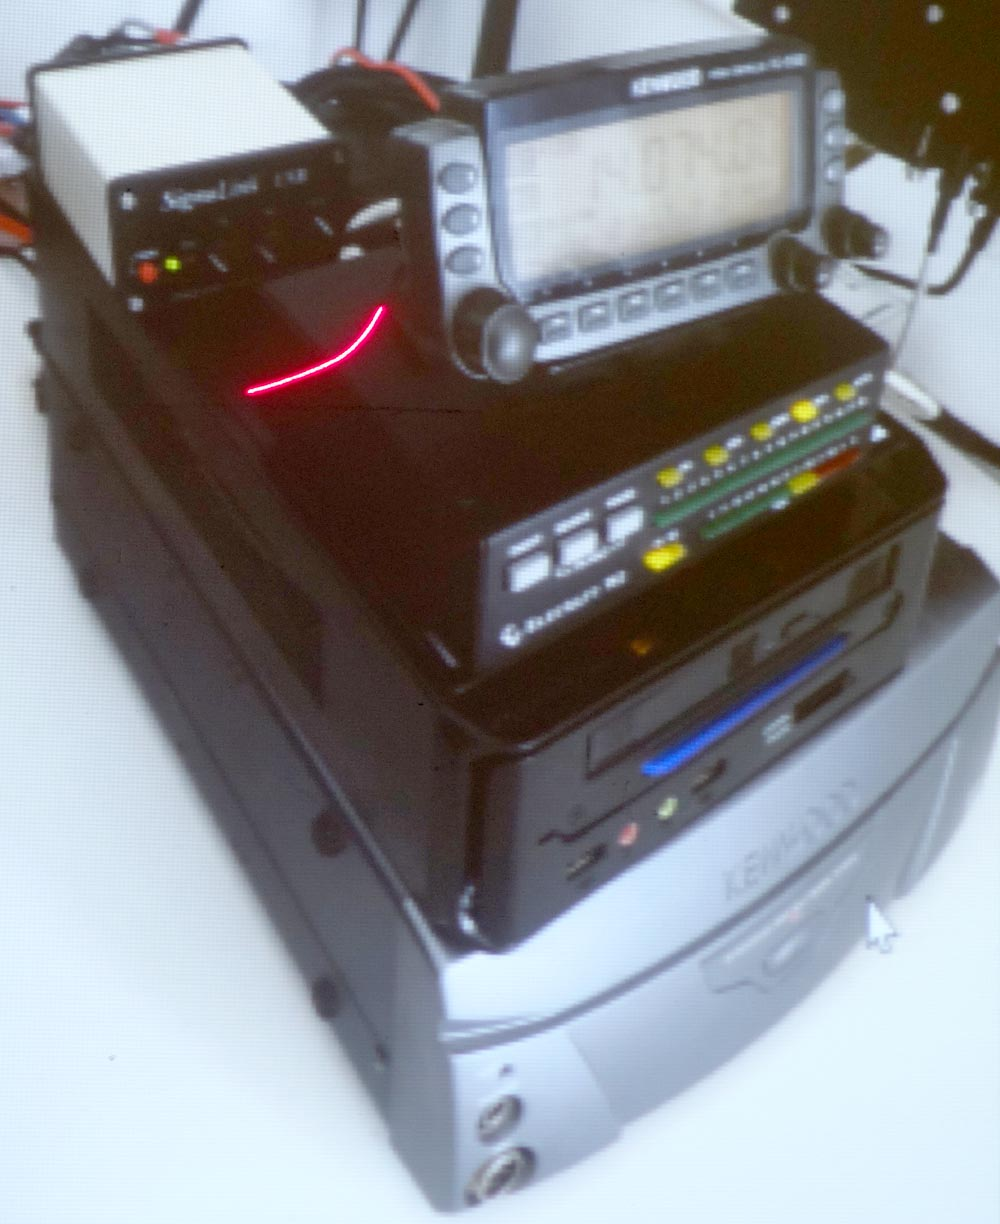 The TS-2000 rig at the bottom, control PC, SWR monitor, Signallink sound  card and detachable fascia.